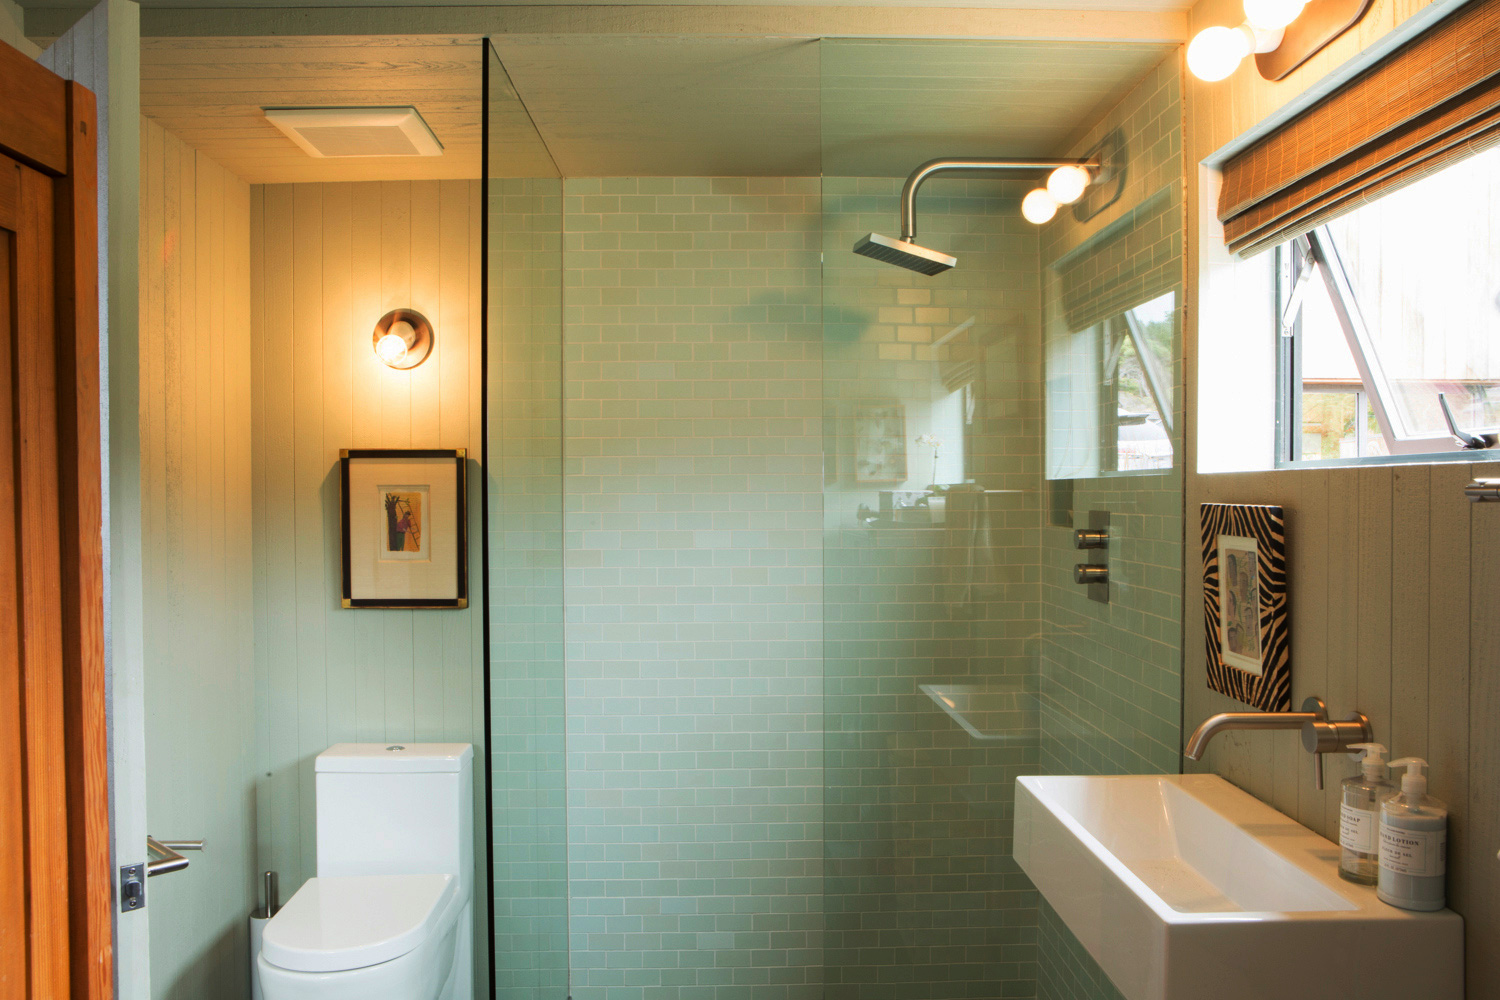 A tiled shower room with glass partitions